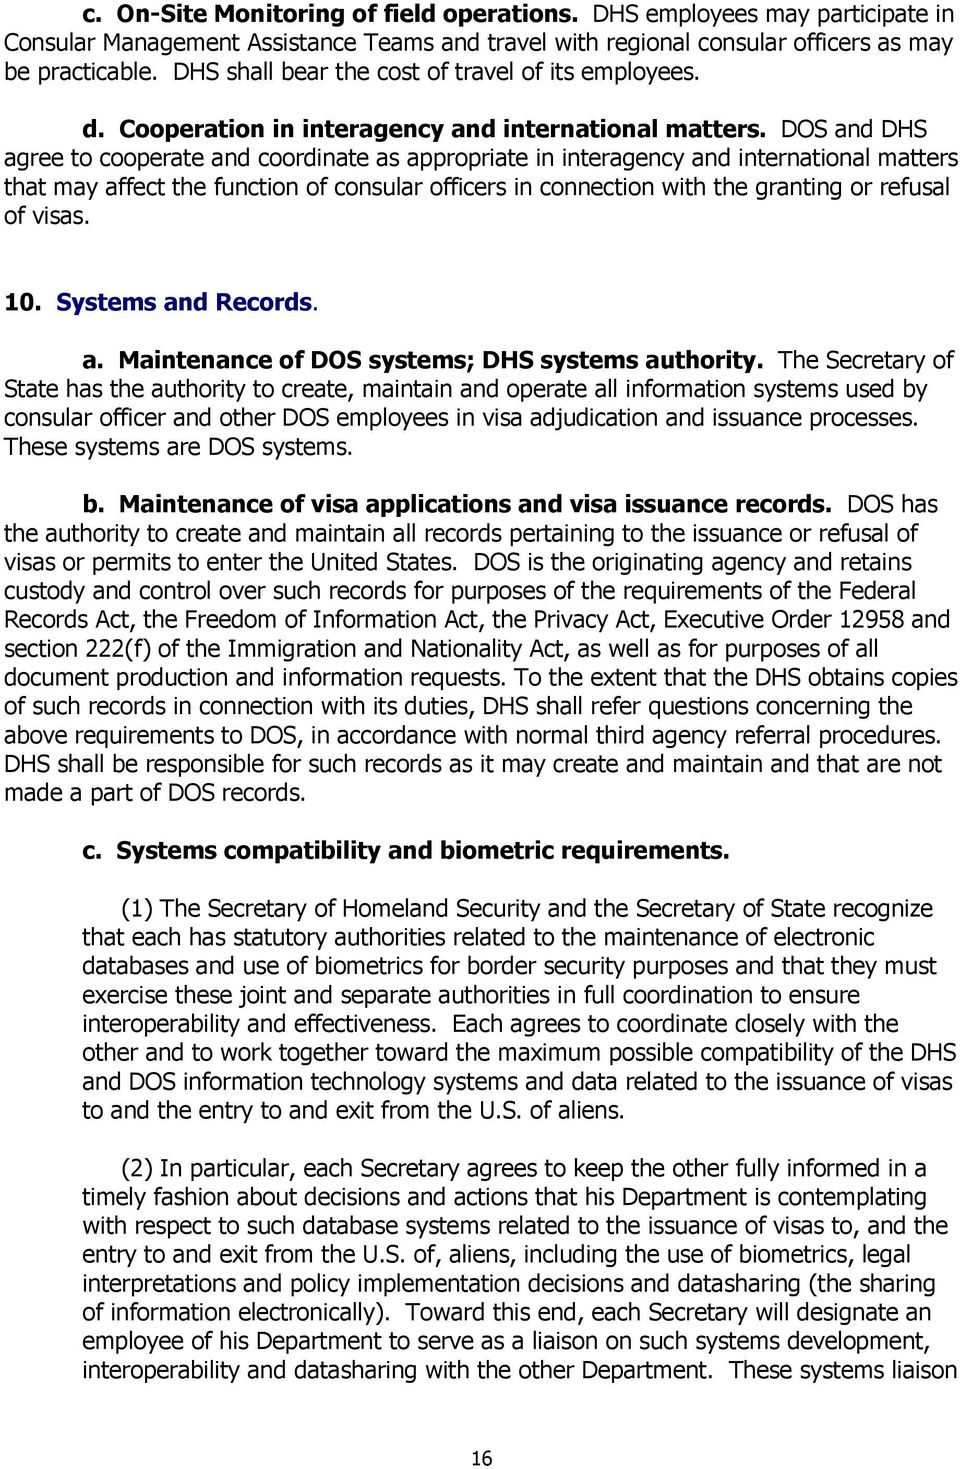 DOS and DHS agree to cooperate and coordinate as appropriate in interagency and international matters that may affect the function of consular officers in connection with the granting or refusal of